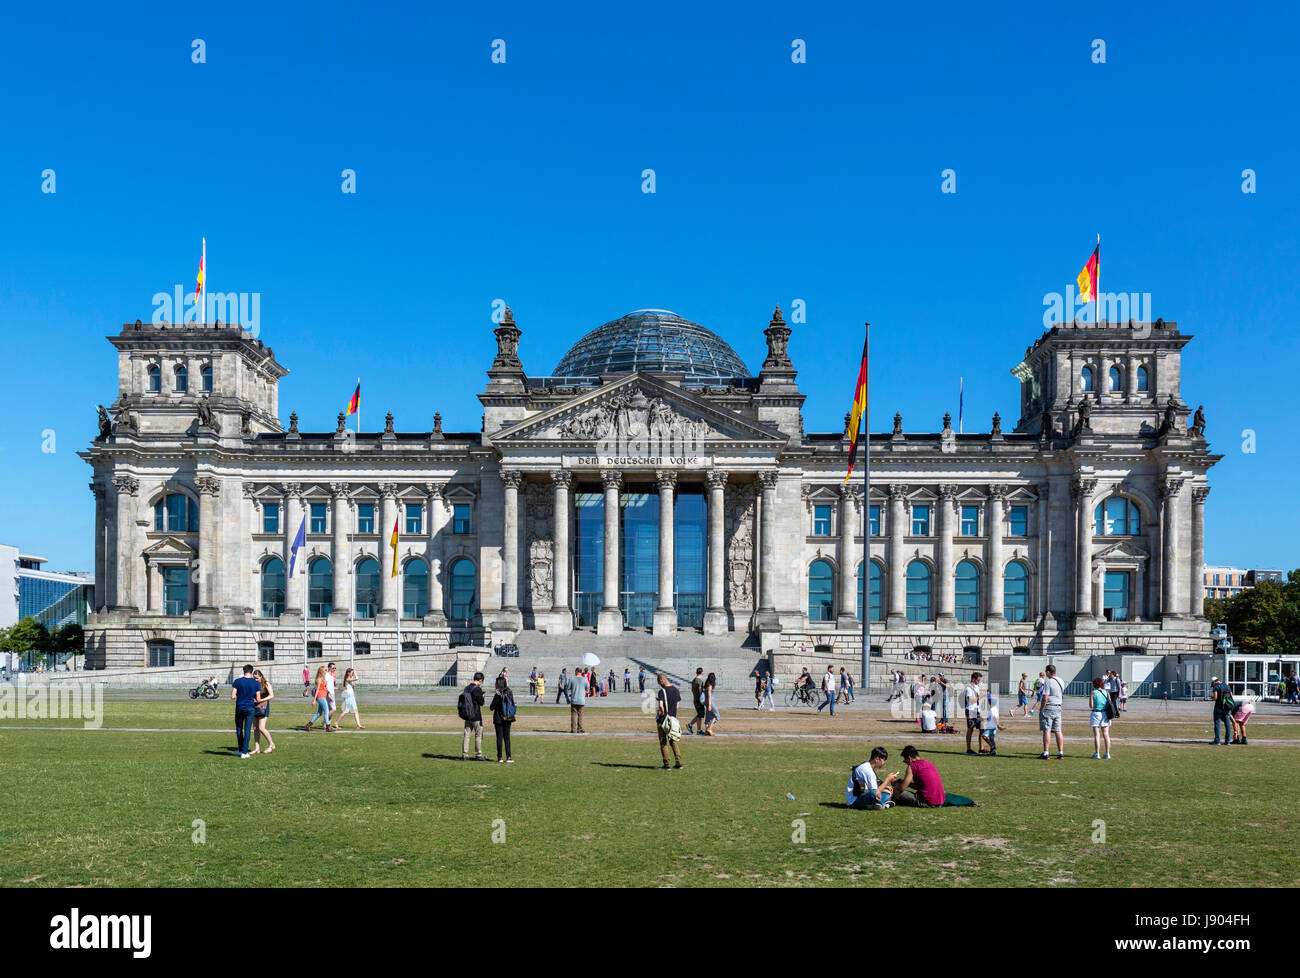 The Reichstag building from the edge of the Tiergarten, Mitte, Berlin, Germany Stock Photo